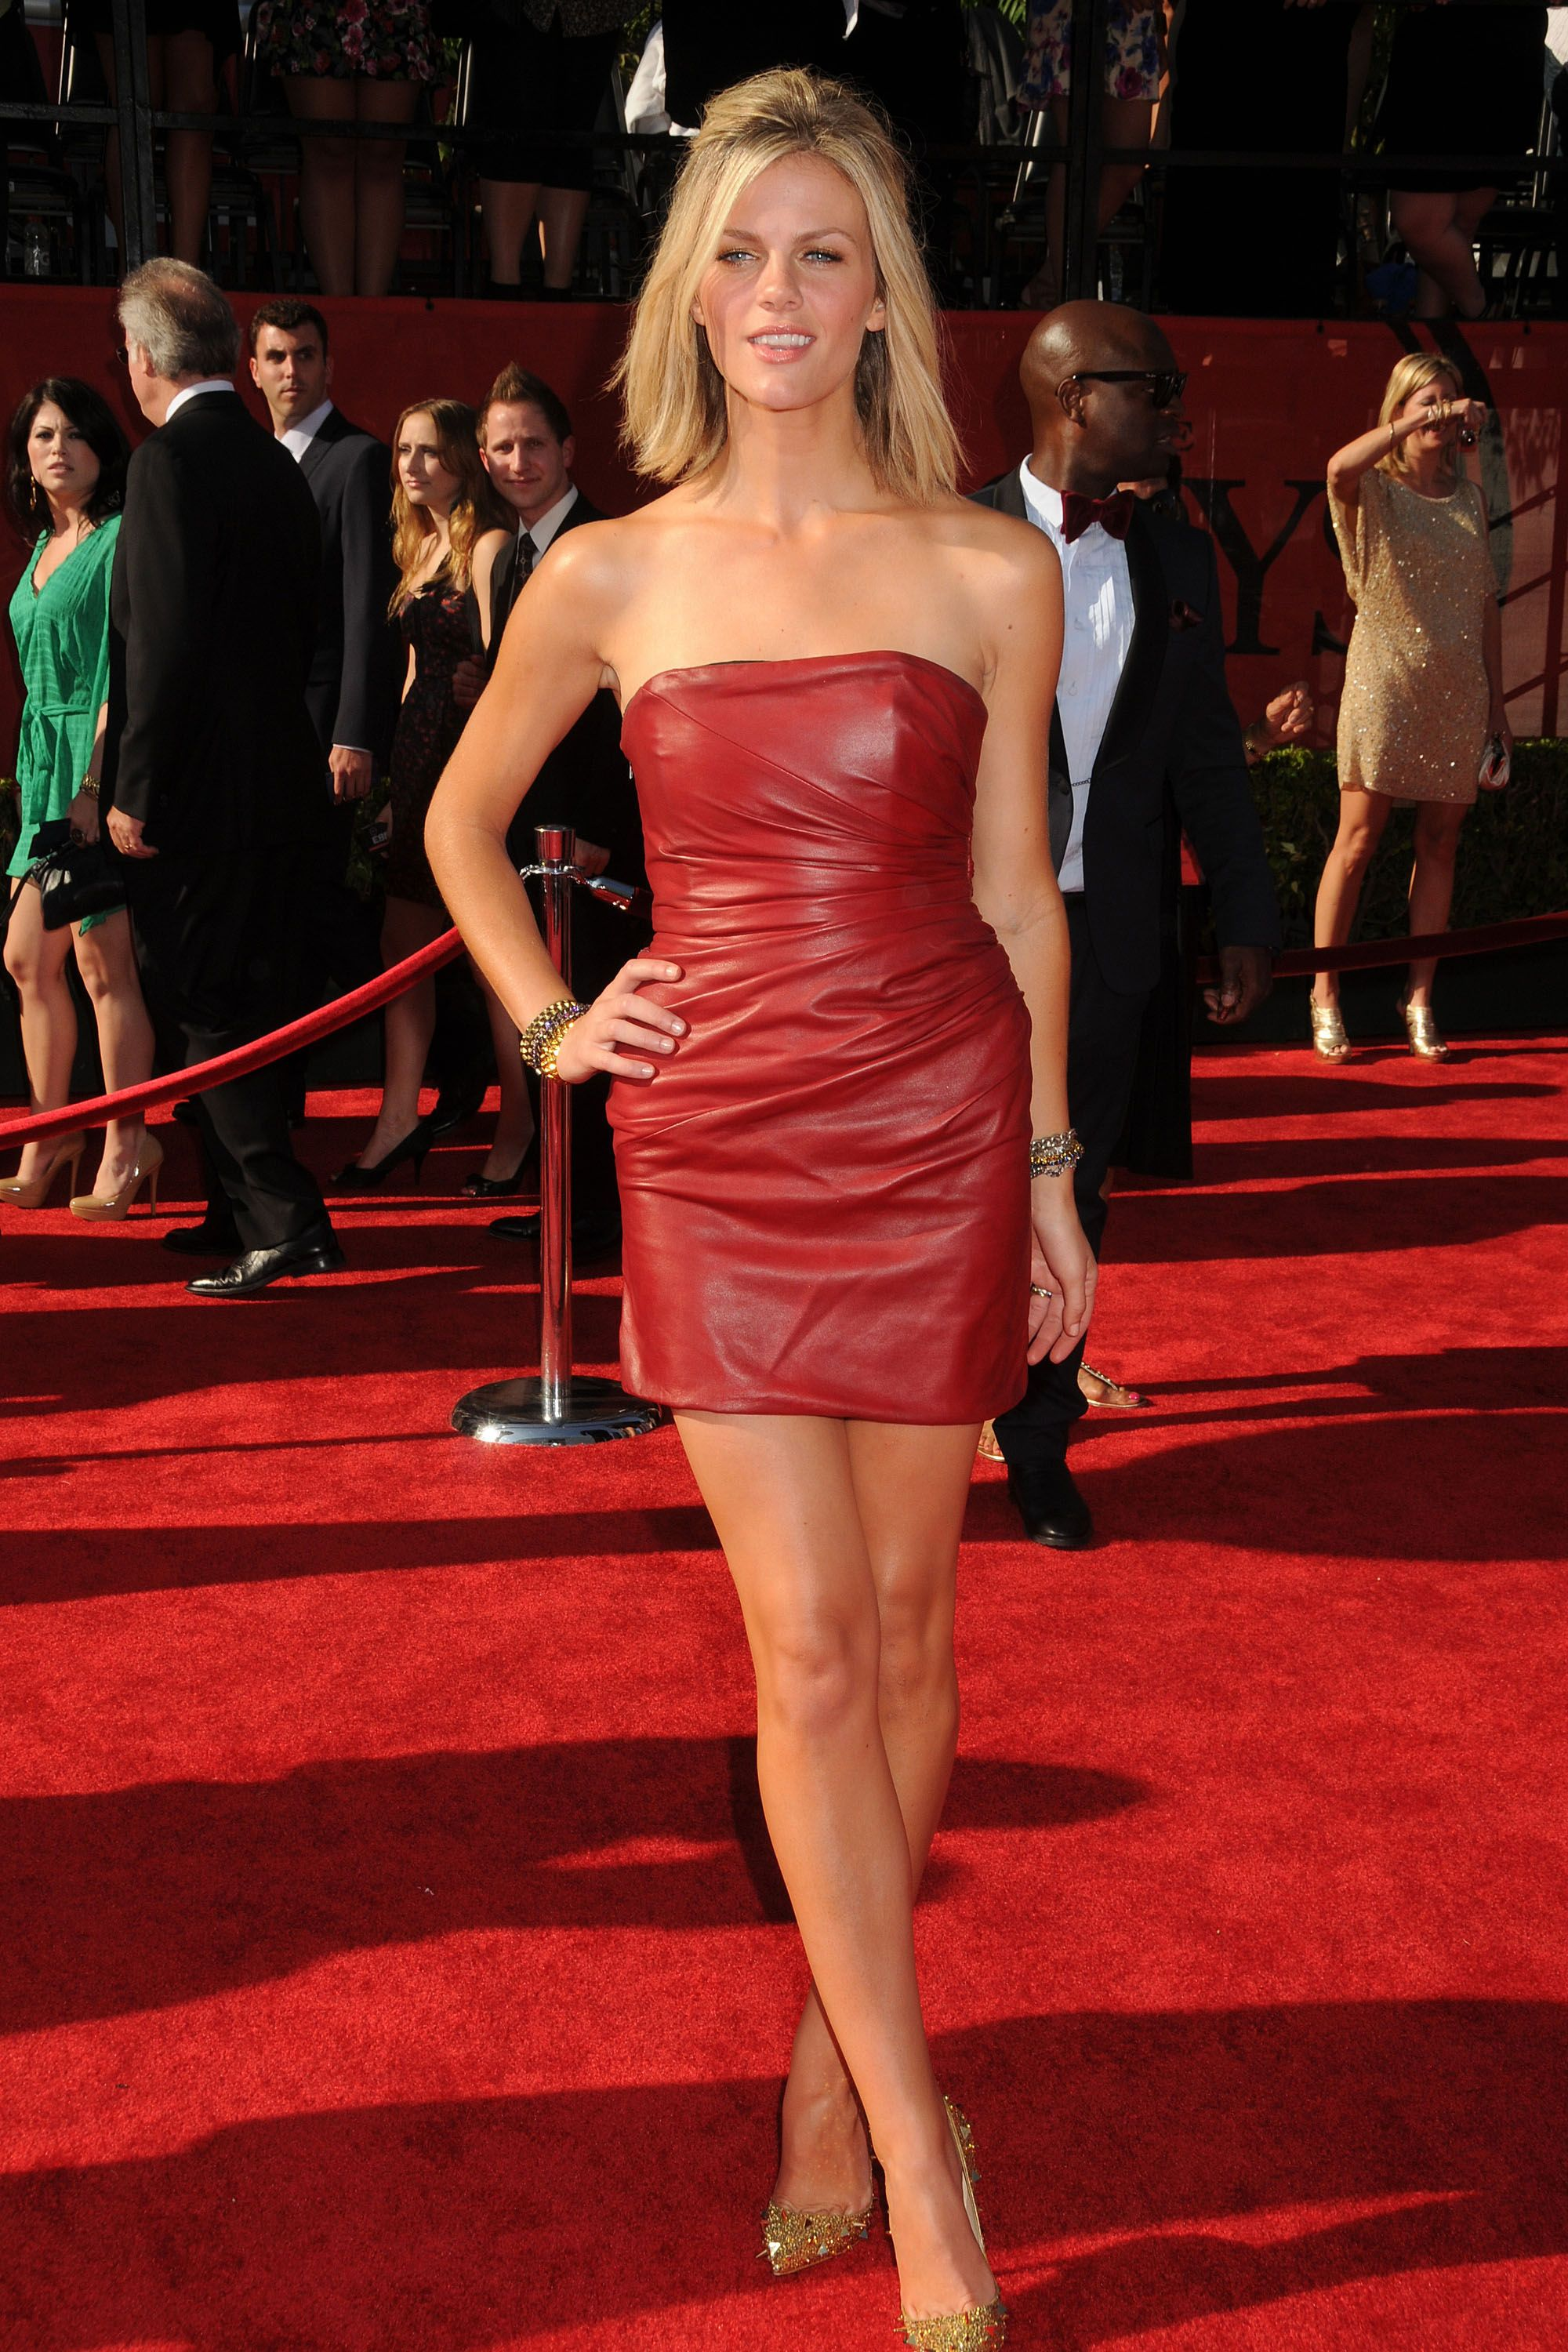 Brooklyn Decker Pictures. Hotness Rating = 9.63/10